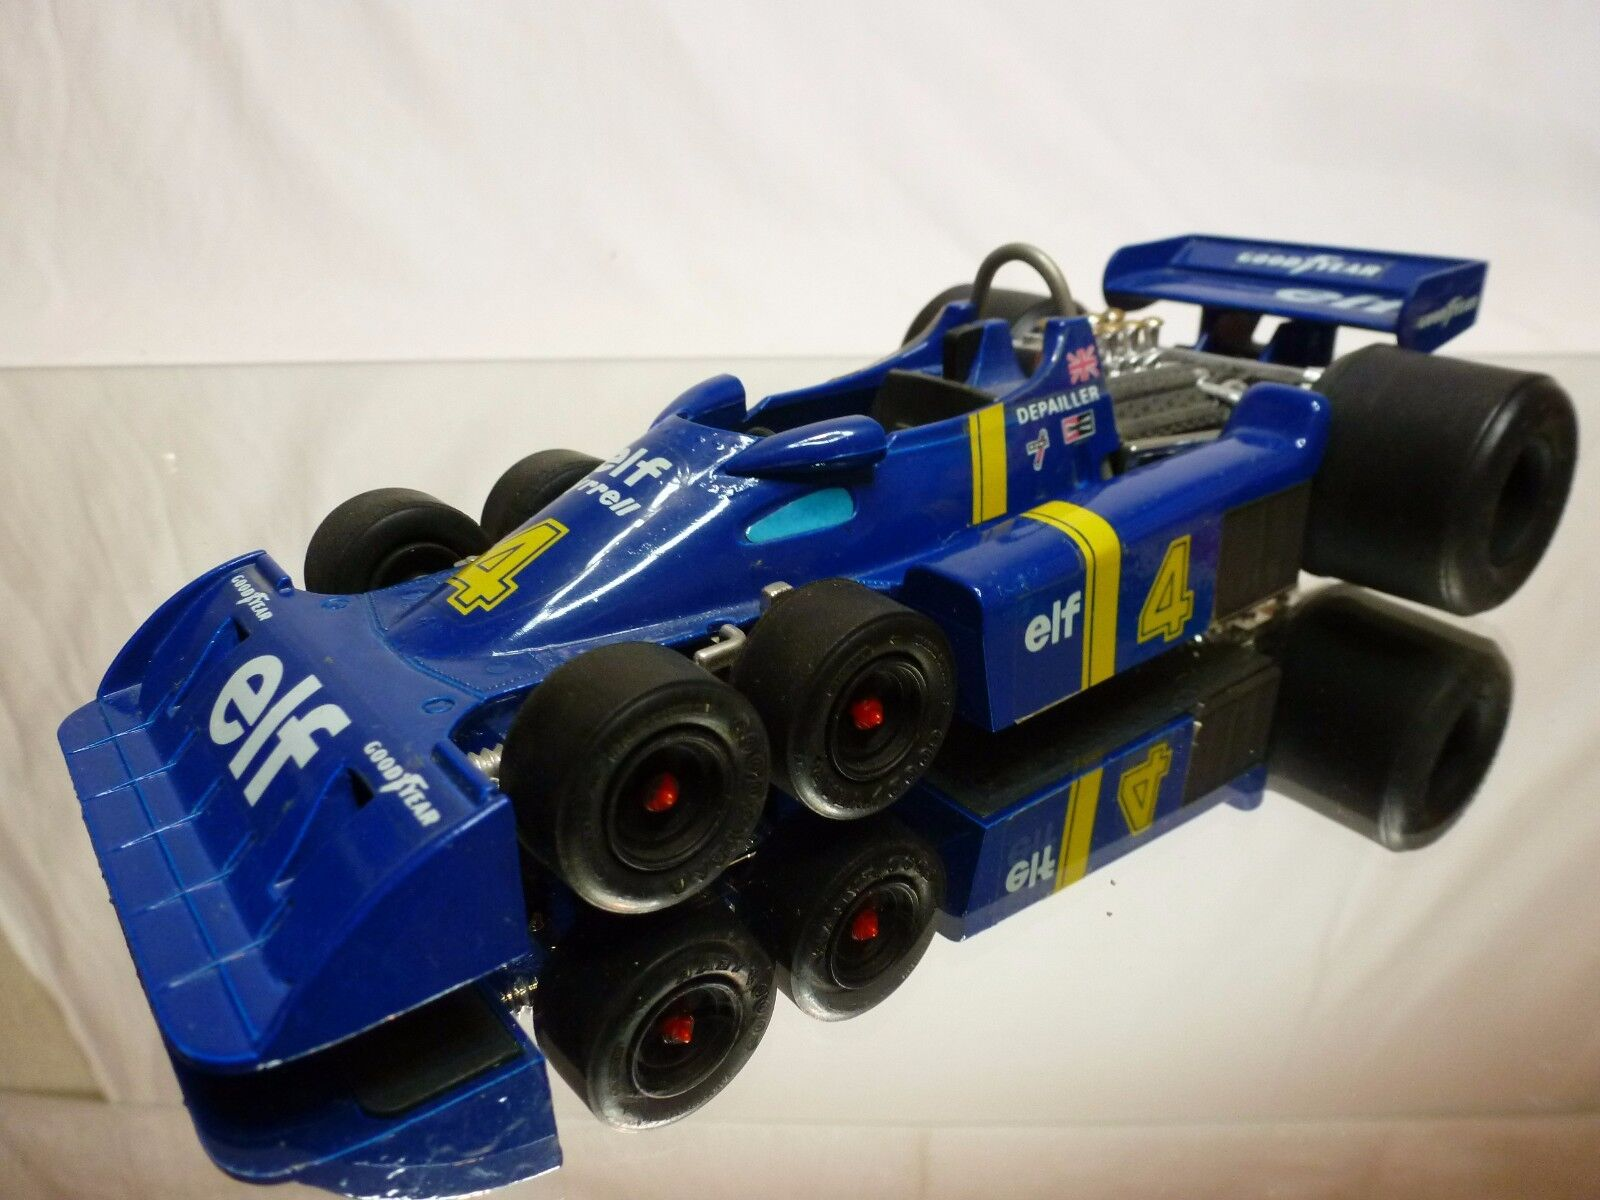 EIDAI GRIP - TYRRELL P34 6 WHEEL COSWORTH ELF - DEPAILLER - F1 blu 1 20 - GOOD